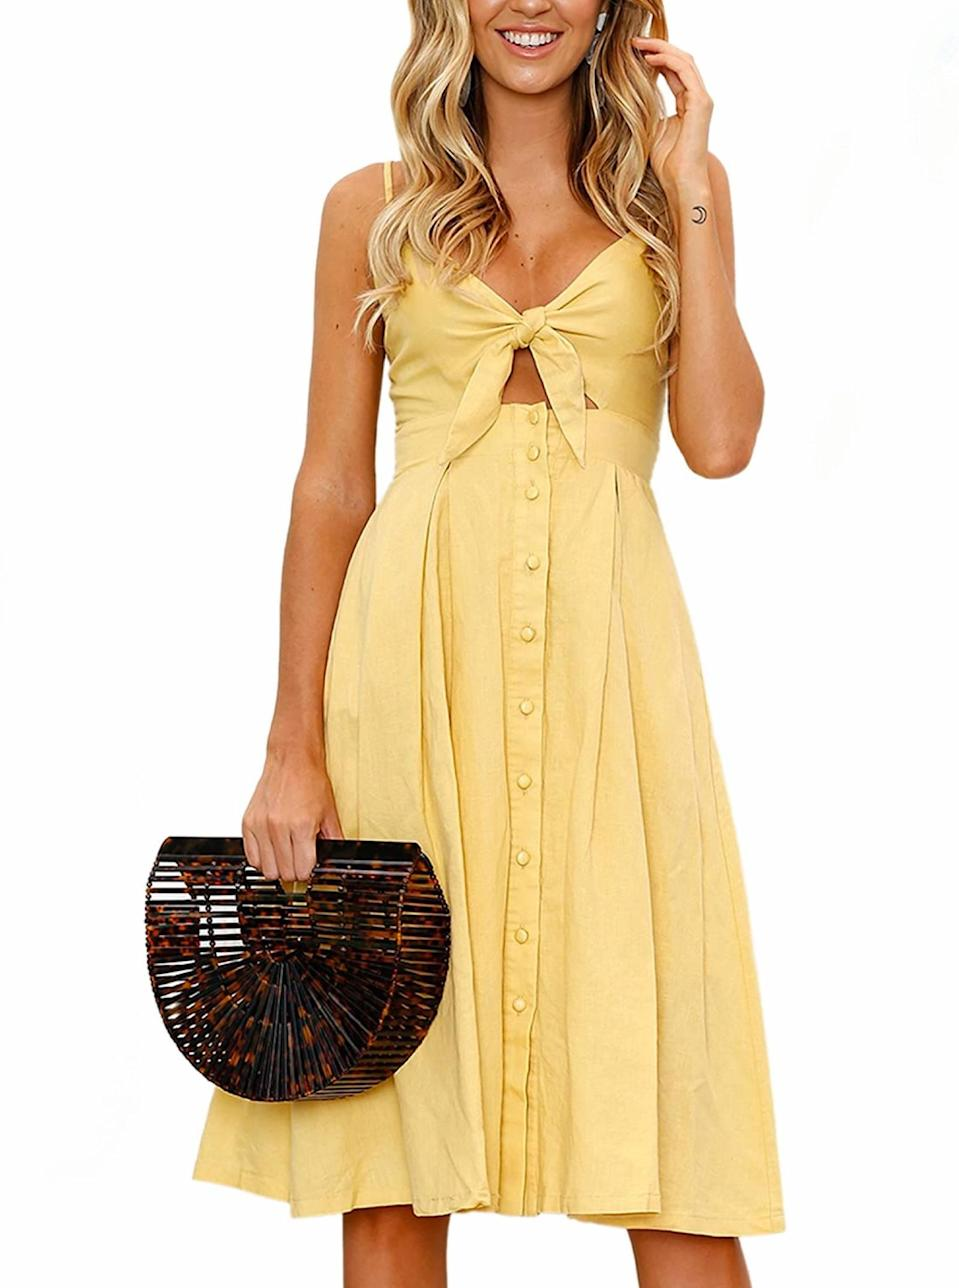 """A yellow sundress best paired with a wooden bag and an <a href=""""https://www.glamour.com/story/haus-aperitif-review?mbid=synd_yahoo_rss"""" rel=""""nofollow noopener"""" target=""""_blank"""" data-ylk=""""slk:aperitif"""" class=""""link rapid-noclick-resp"""">aperitif</a>. $18, Amazon. <a href=""""https://www.amazon.com/ECOWISH-Womens-Summer-Spaghetti-Backless/dp/B0799KCJZV"""" rel=""""nofollow noopener"""" target=""""_blank"""" data-ylk=""""slk:Get it now!"""" class=""""link rapid-noclick-resp"""">Get it now!</a>"""